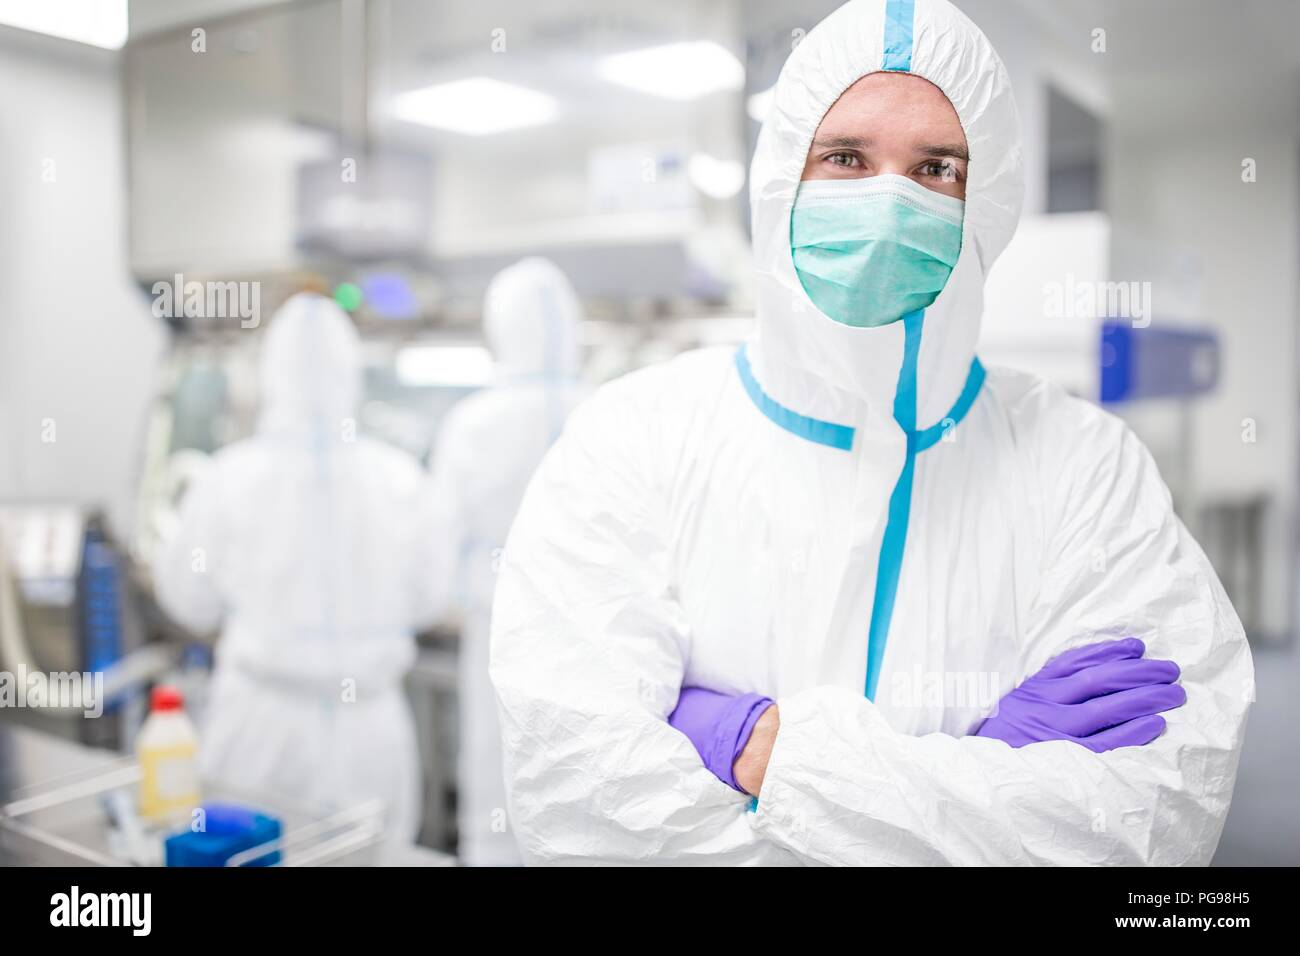 Lab technician wearing a protective suit and face mask in a laboratory that must maintain a sterile environment. - Stock Image